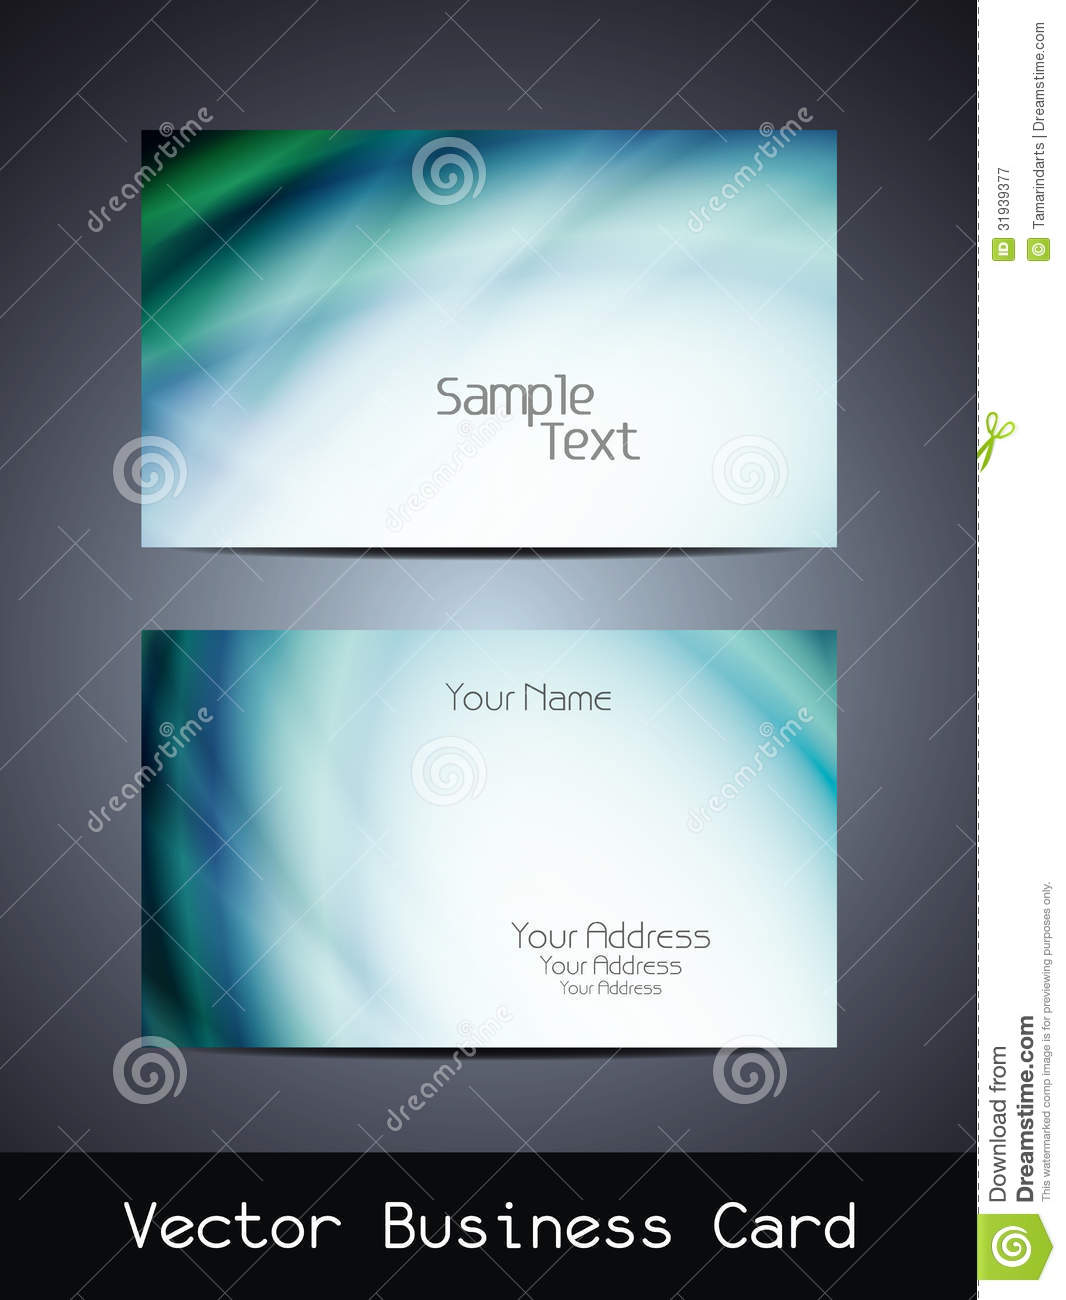 Vector Business Card Design Stock Vector - Illustration of blank ...